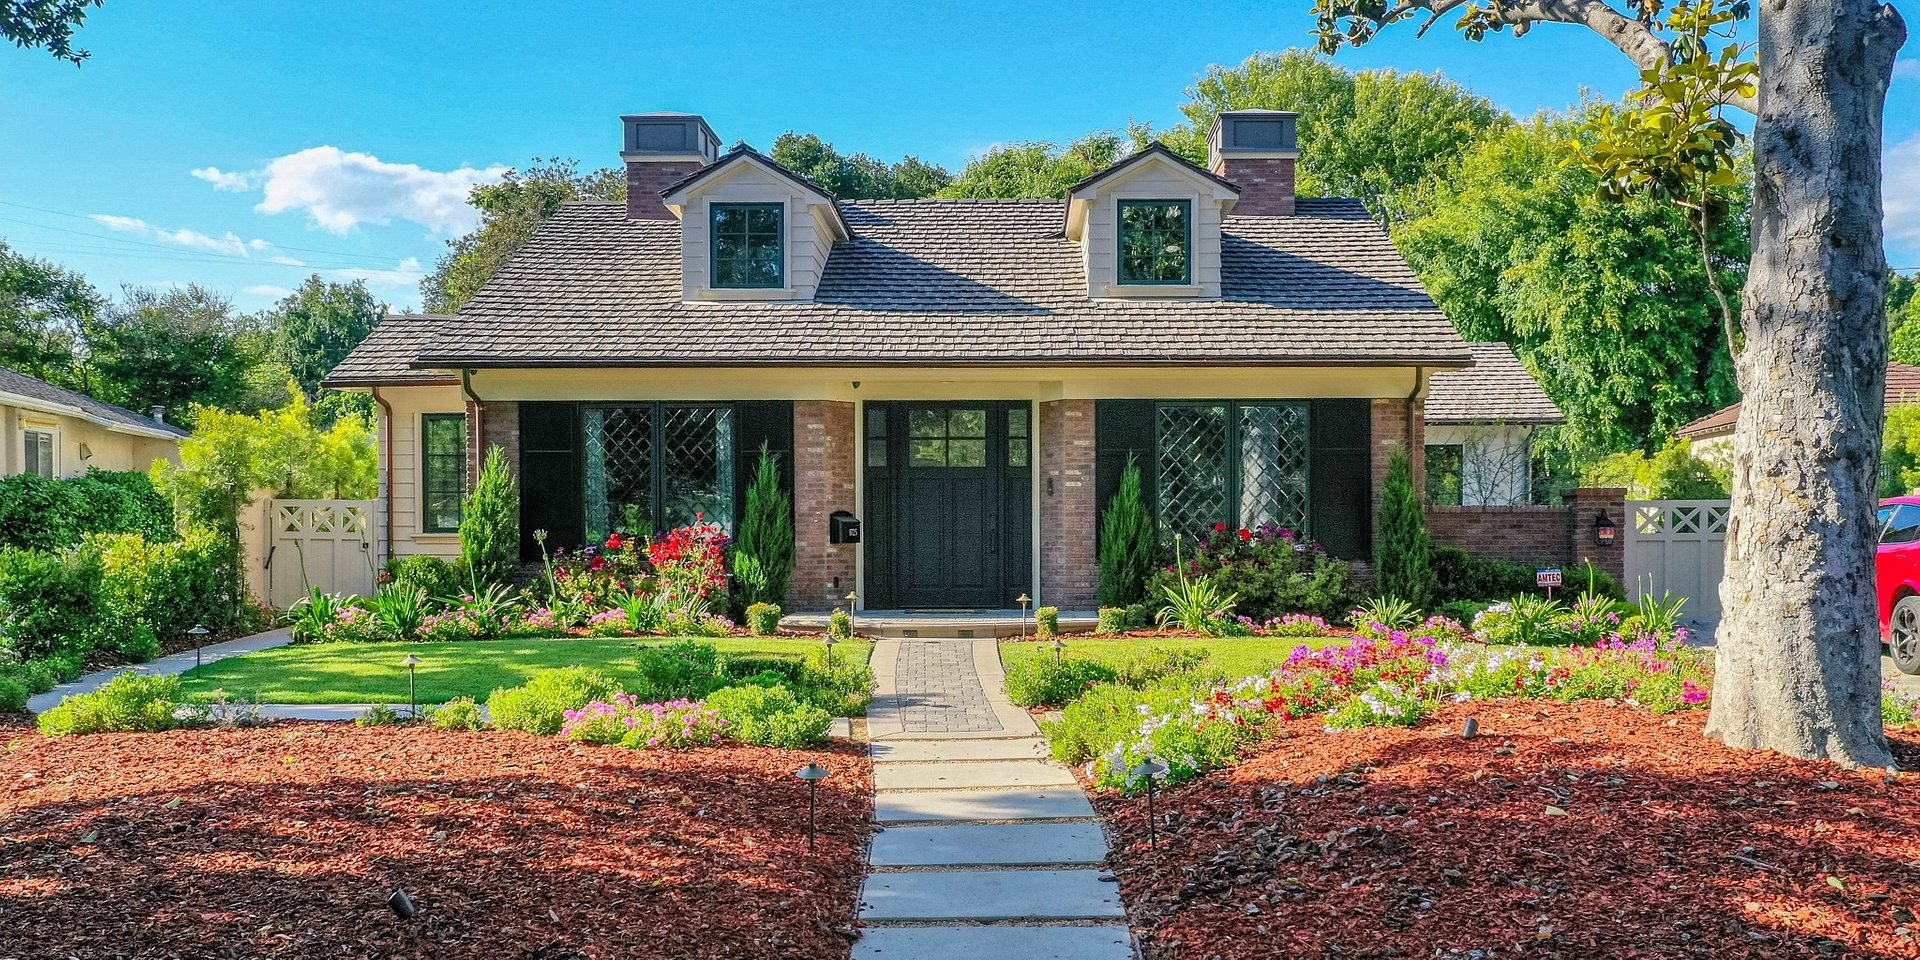 Coldwell Banker Residential Brokerage Lists San Marino Property for $3.988 Million